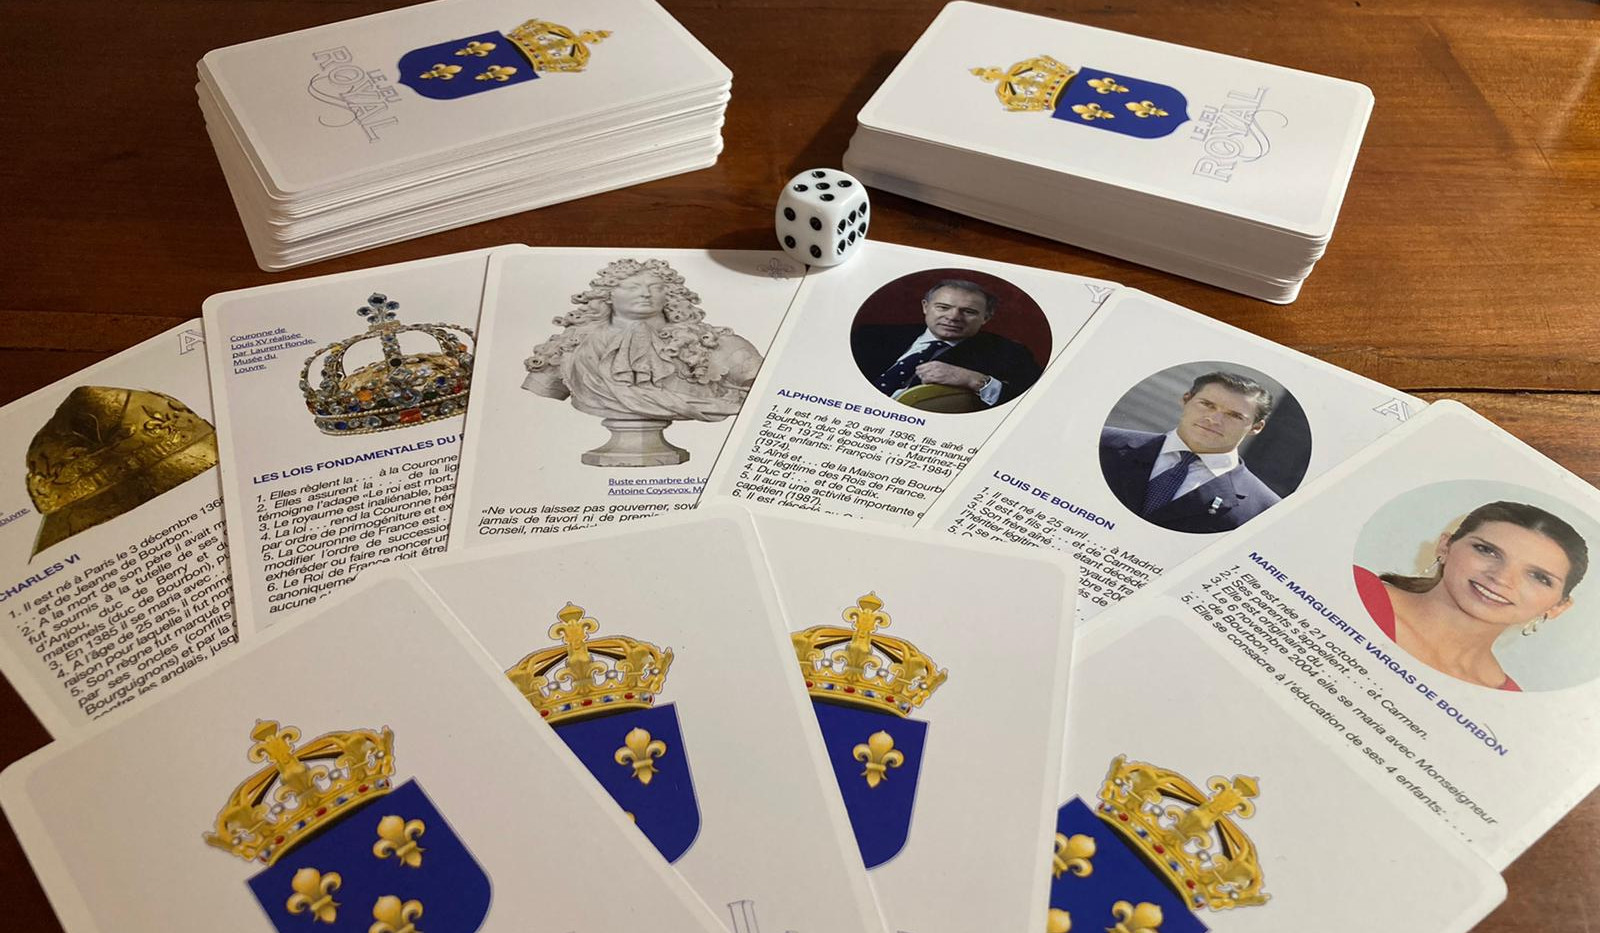 Le JEU ROYAL